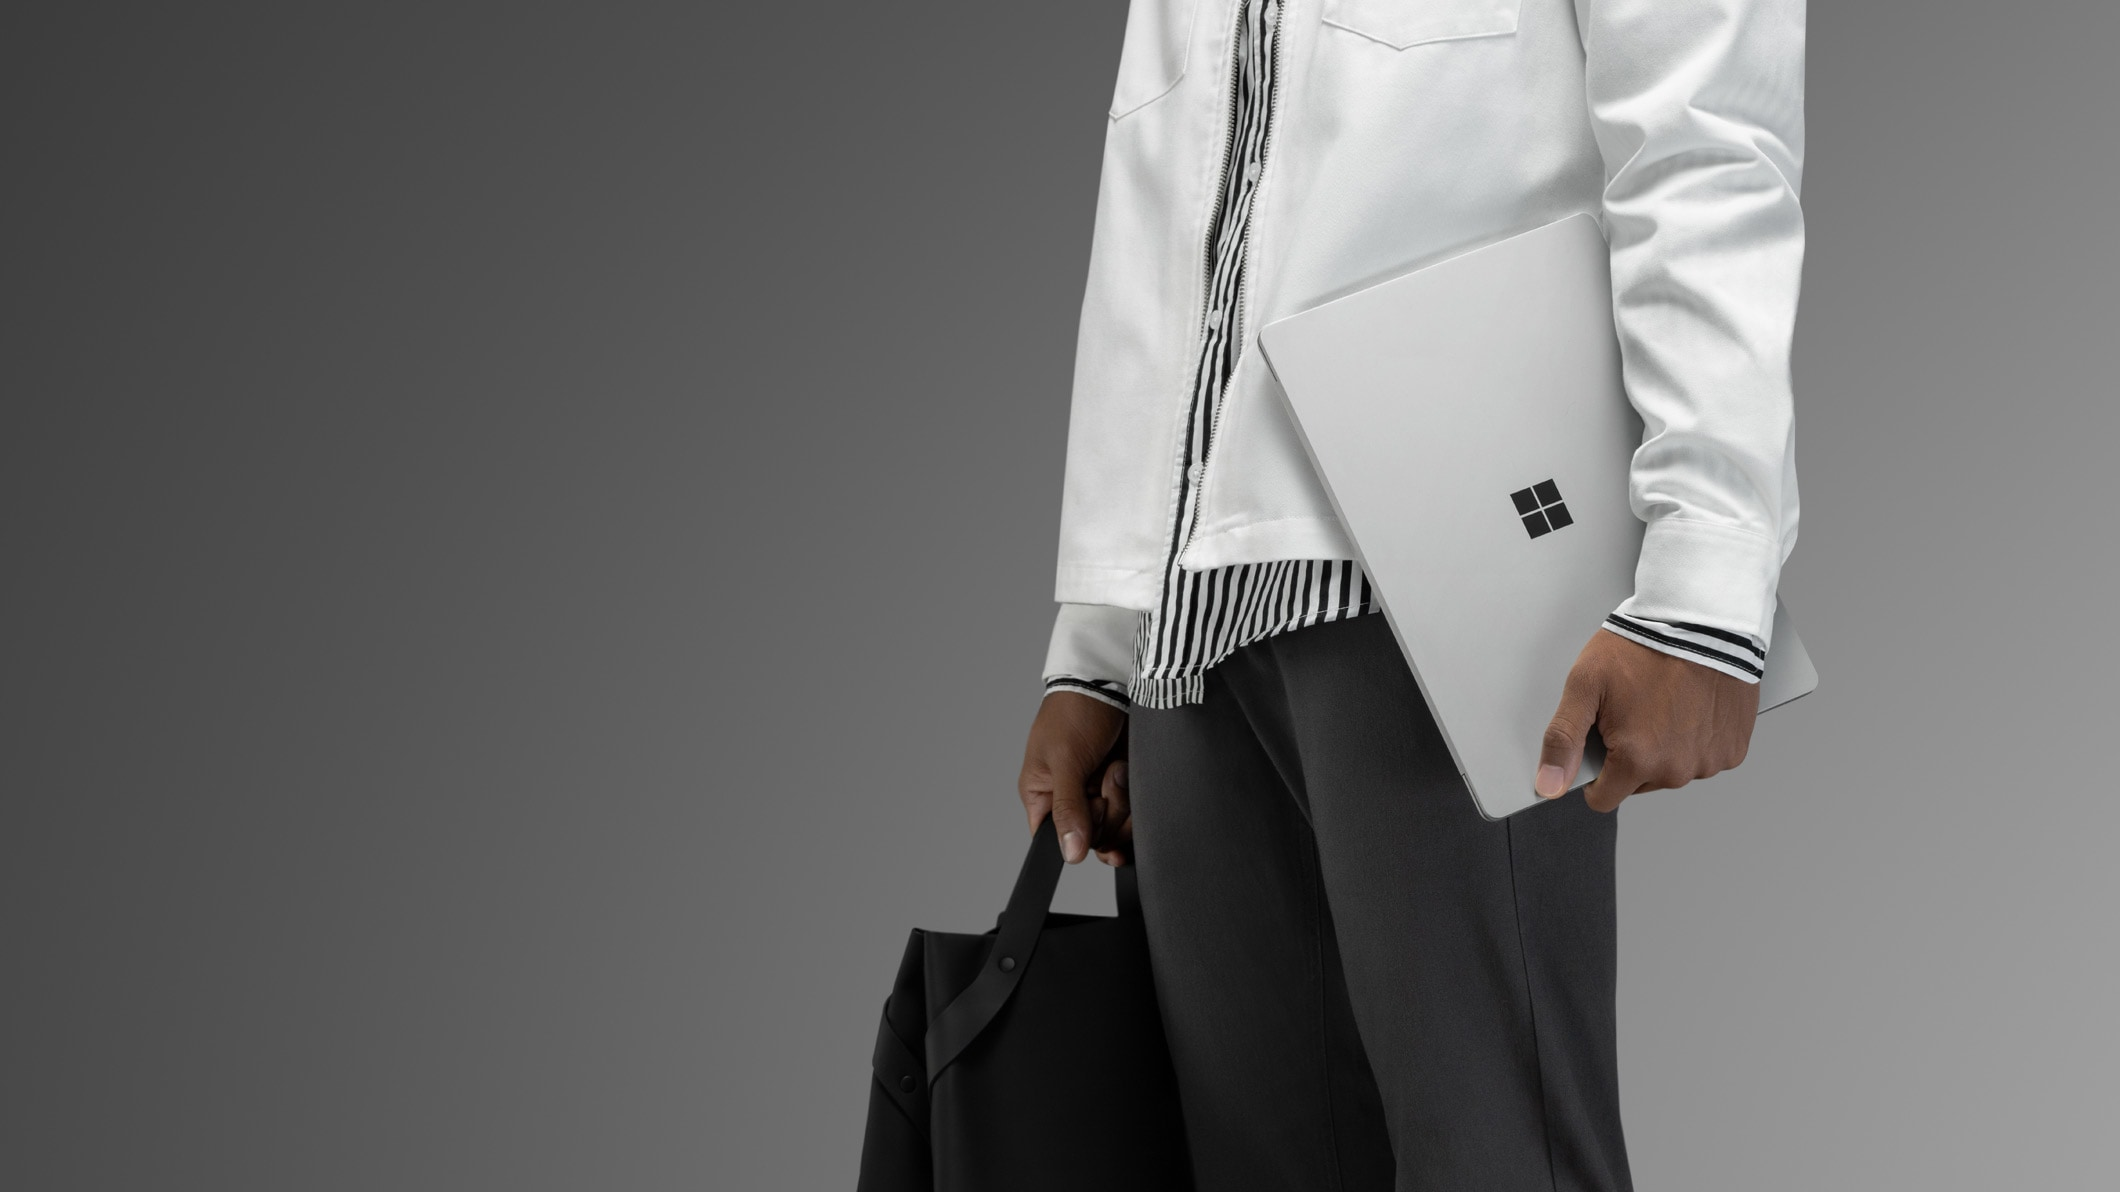 A man in a white jacket carries Surface Laptop 2 in Platinum by his side